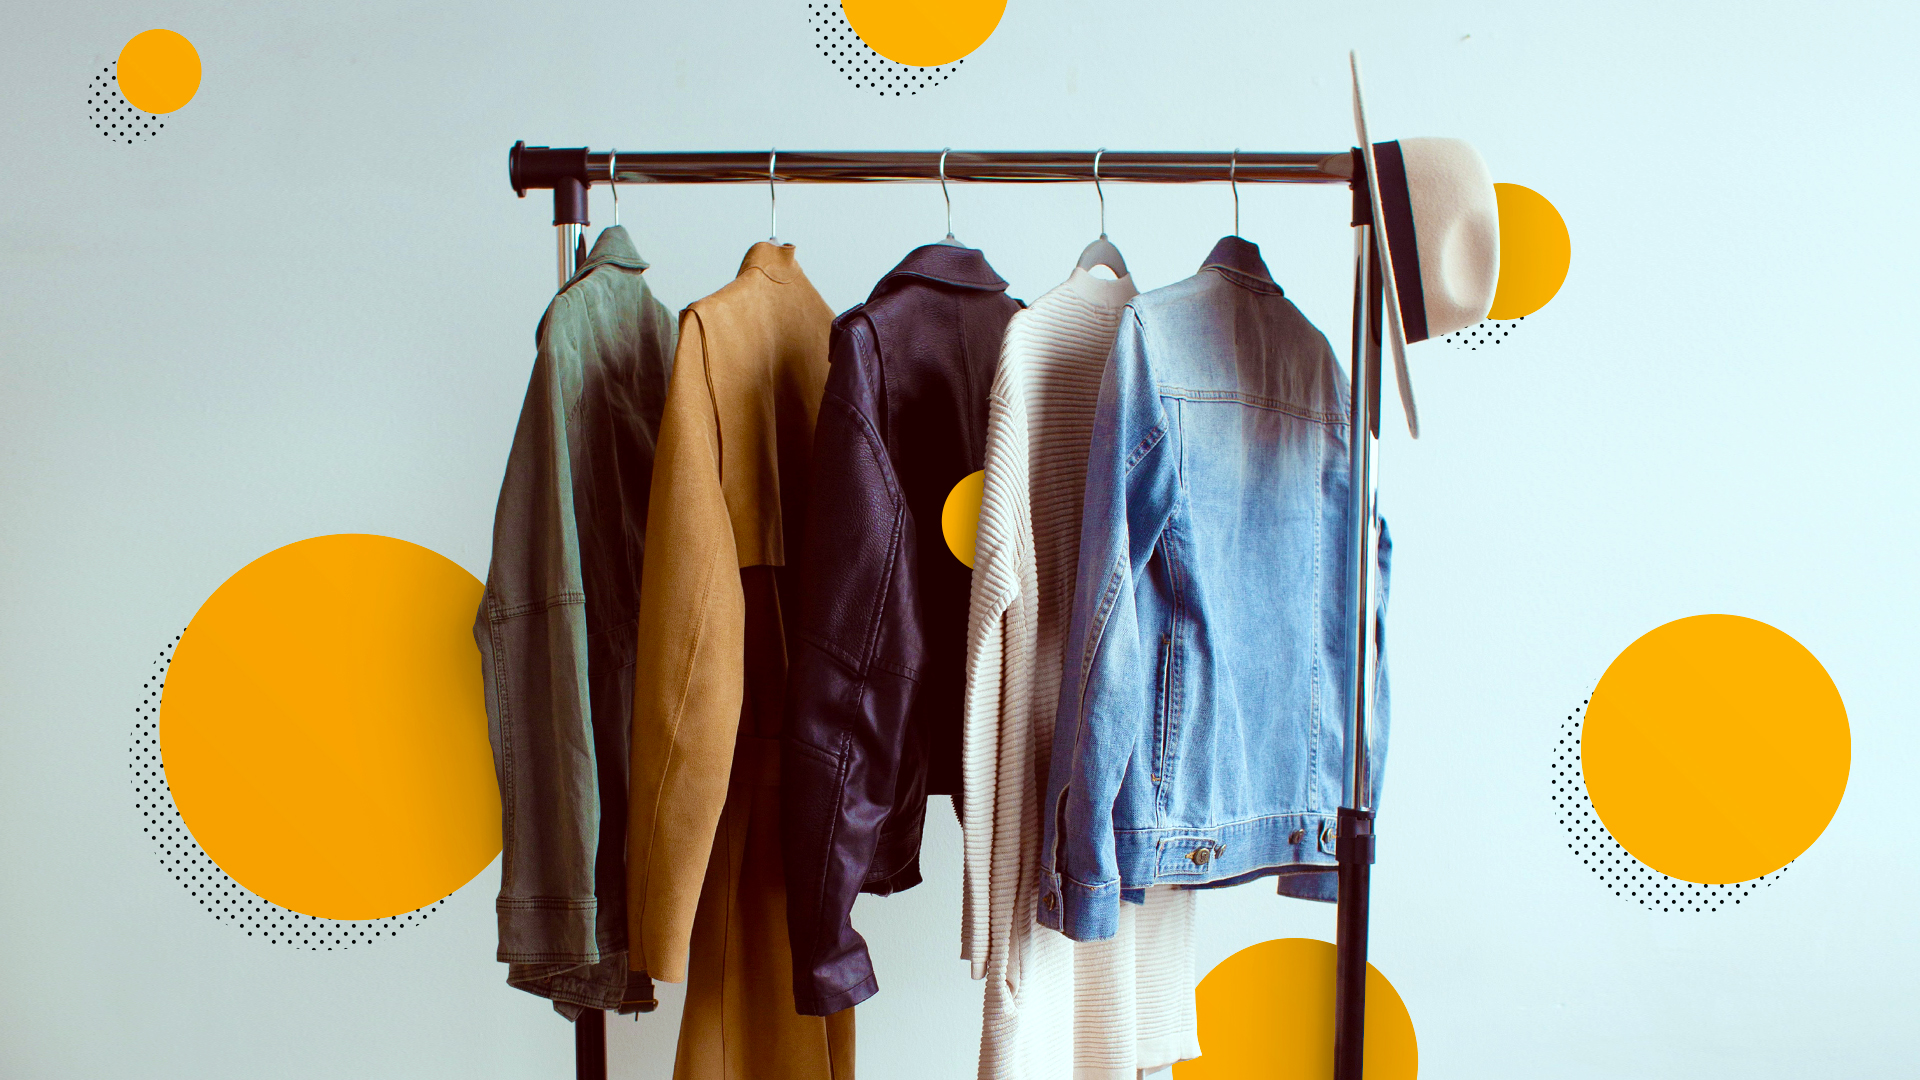 A clothing rack with clothing garments hanging from it surrounded by a circle pattern.